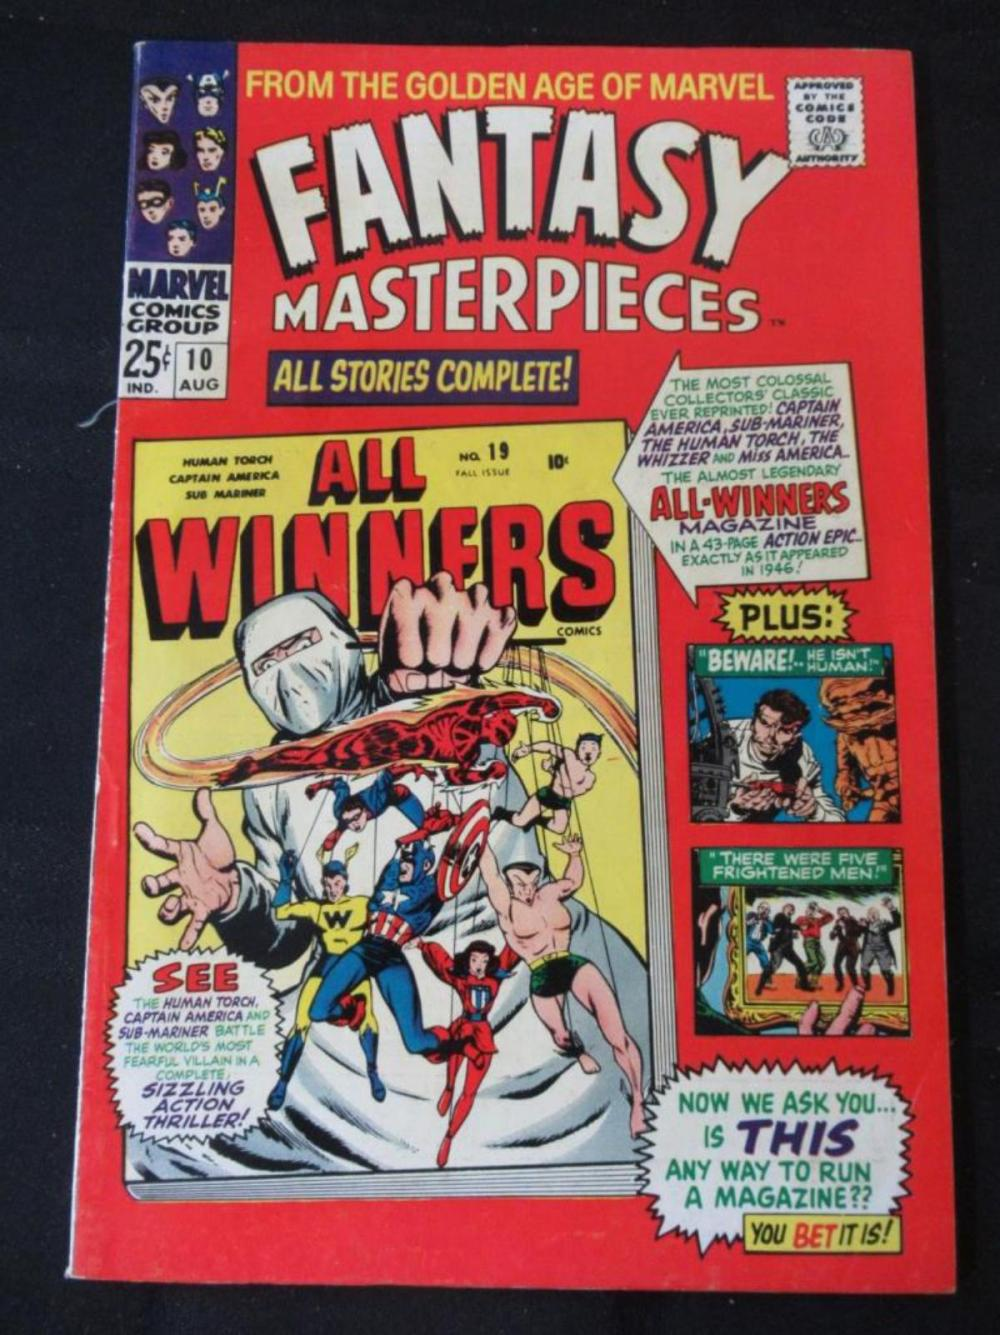 Fantasy Masterpieces 25c #10 All-Winners